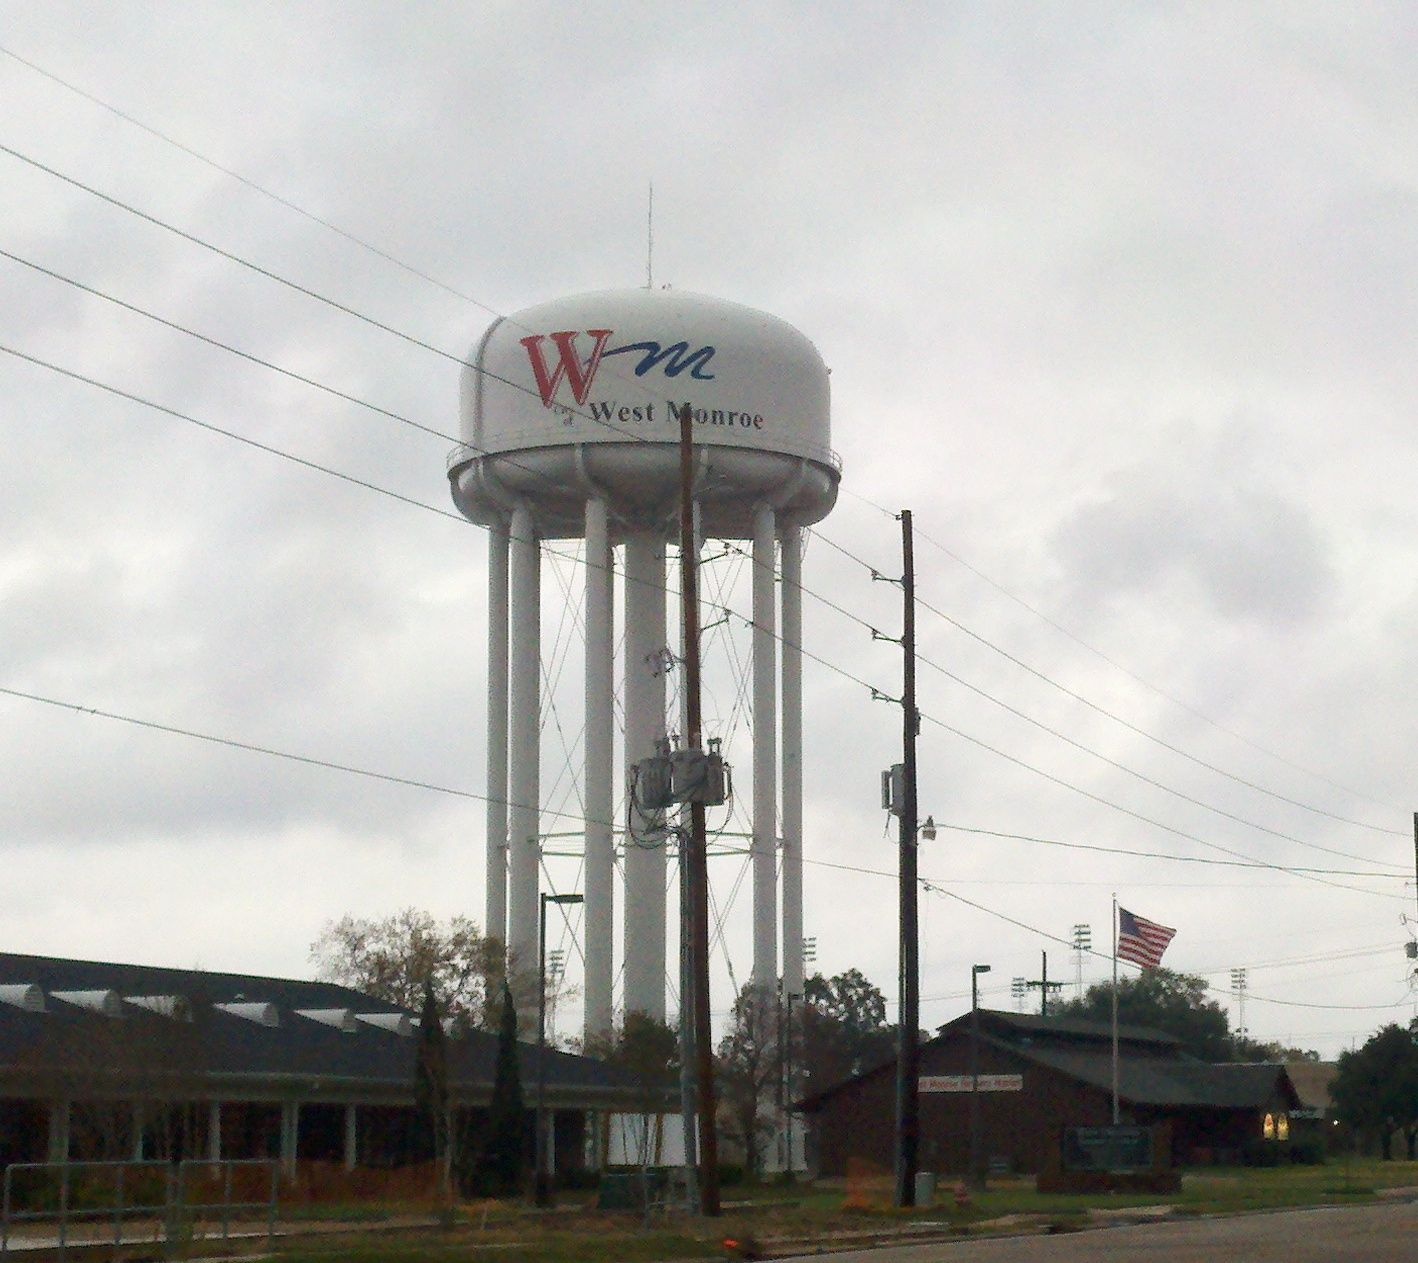 Pin By Gayle On Twin Cities Life West Monroe Louisiana Homes City